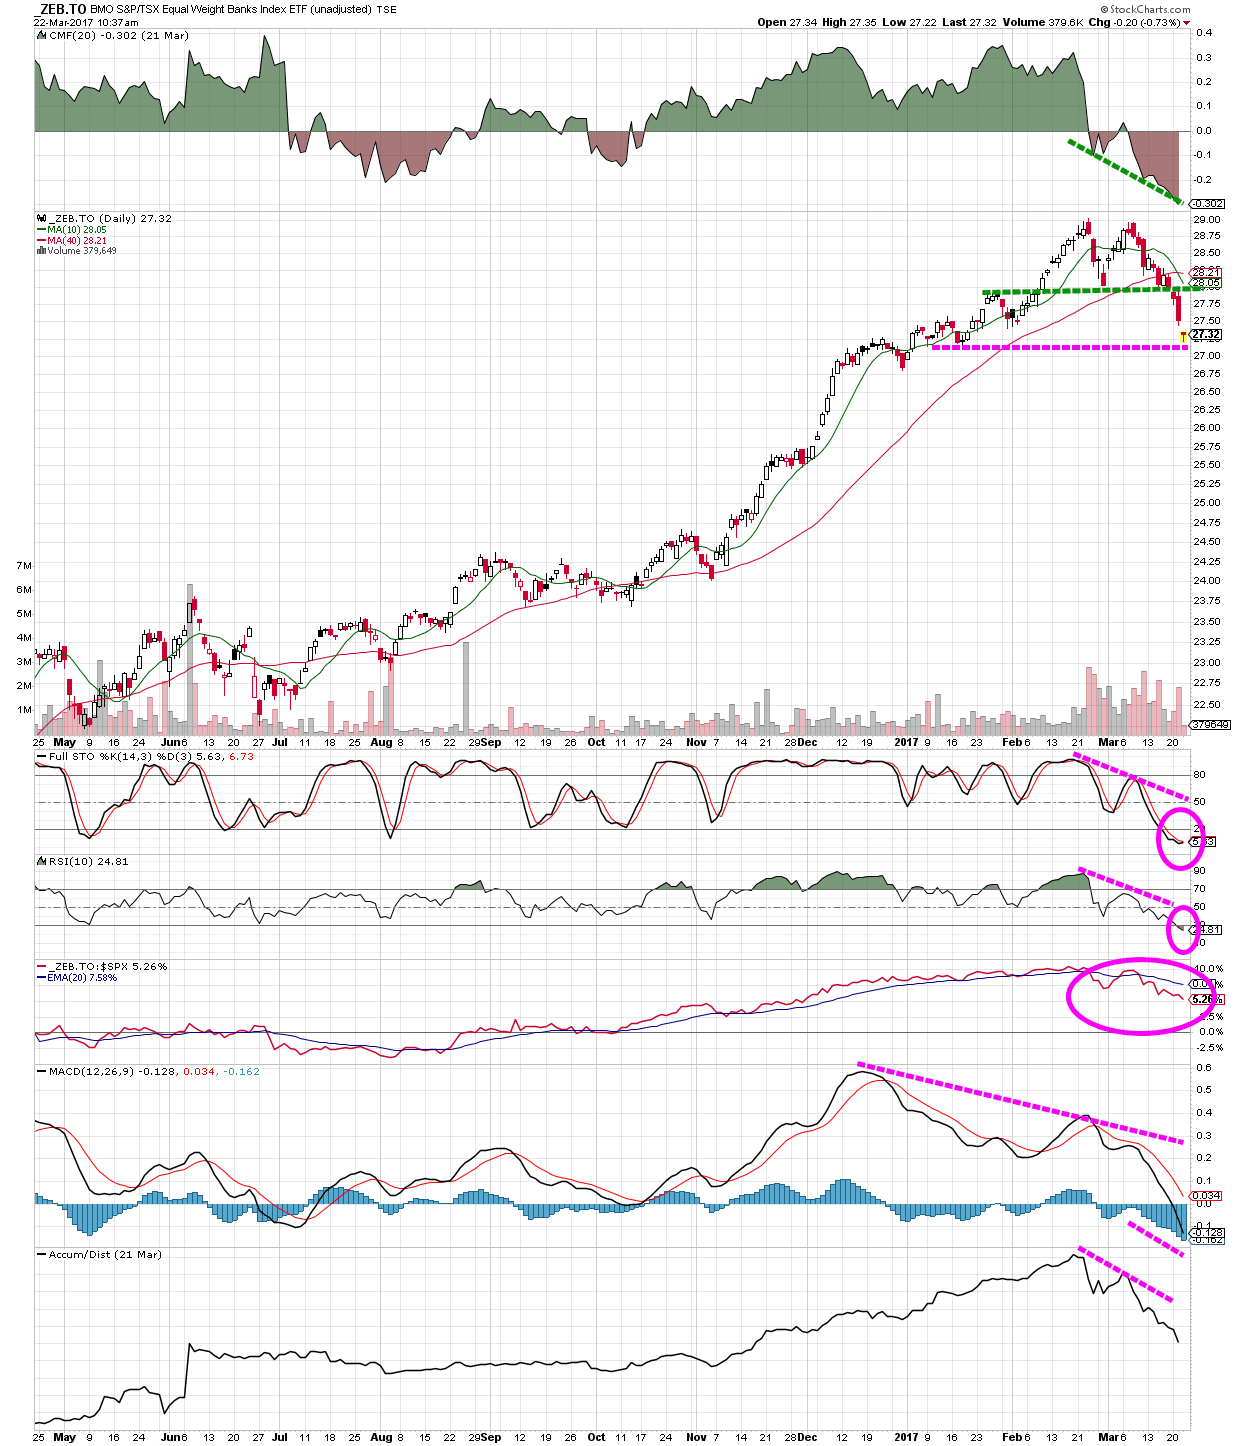 A technical chart analysis of the Canadian Banks ETF ZEB - showing a double top formation with neckline break on volume